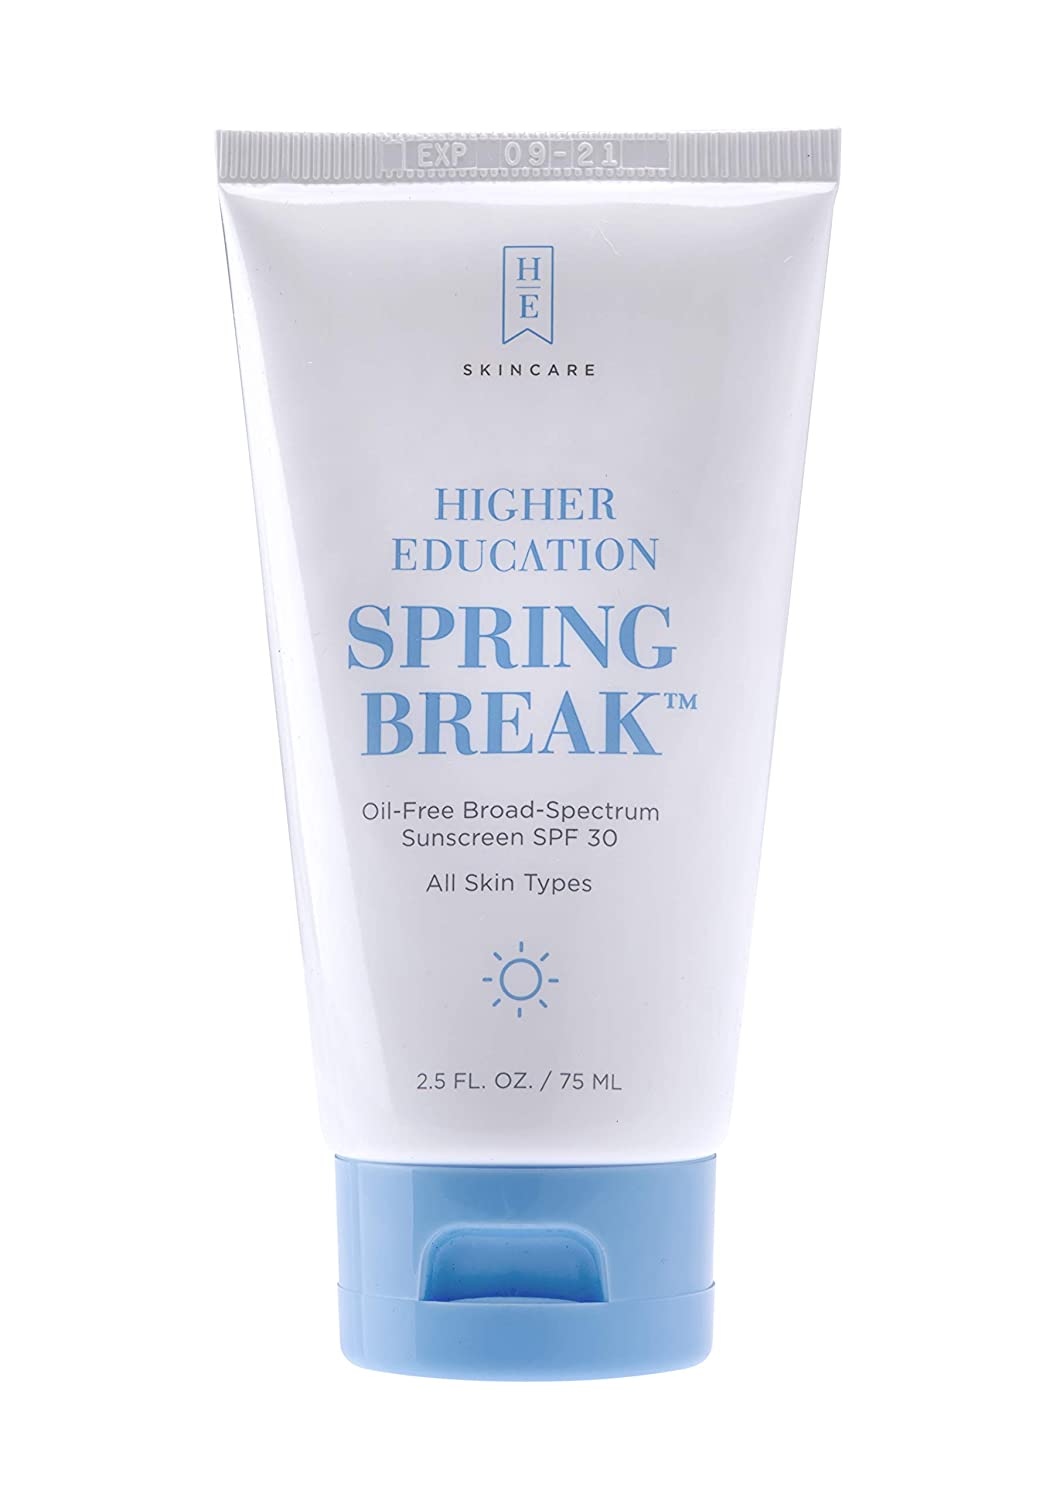 Higher Education Skincare: Spring Break SPF 30 - Oil-Free Sunscreen with Microfine Zinc Offering Broad Spectrum Sunscreen Protection from UVA/UVB; With Aloe Vera and Super Antioxidants - 2.5 fl. oz.